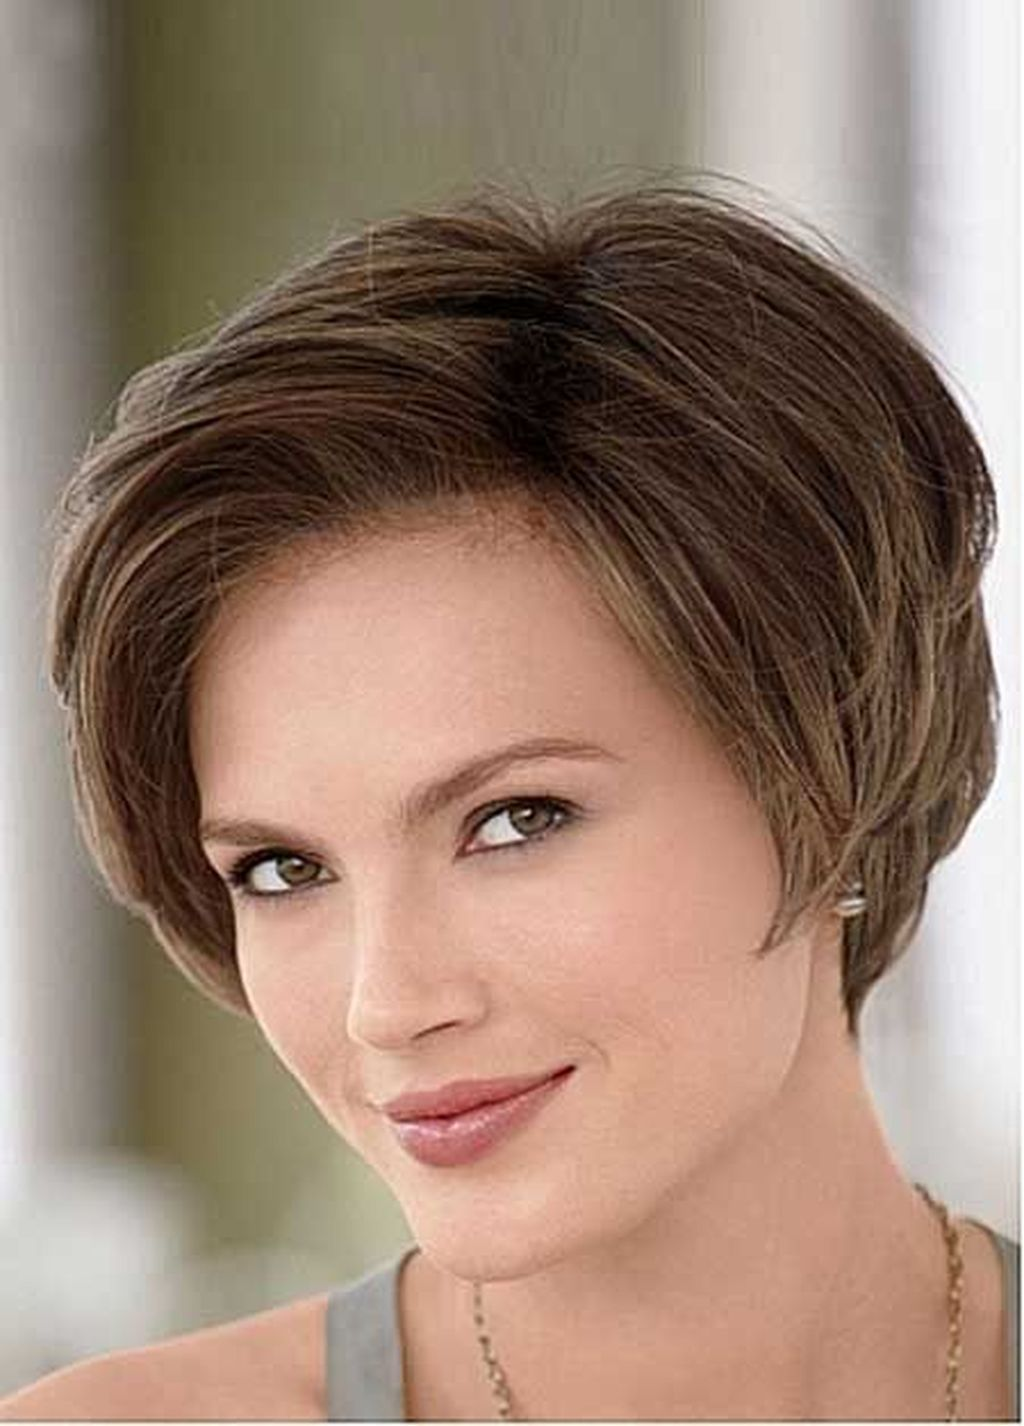 43 beautiful professional hairstyles for women | hair